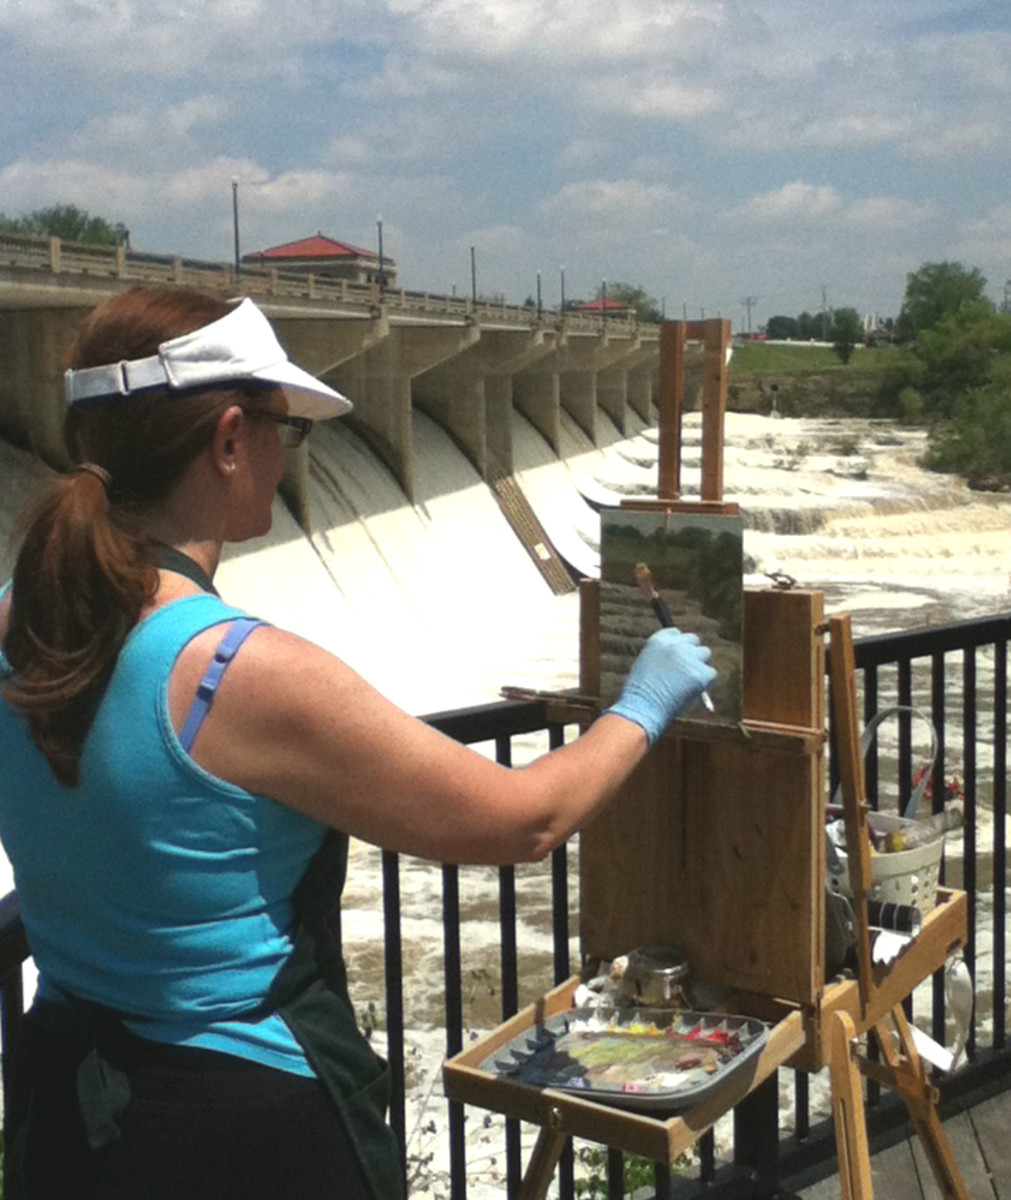 Robie Benve painting outdoors on a very sunny and hot day. Sunscreen and visor are must-haves on a day like that.